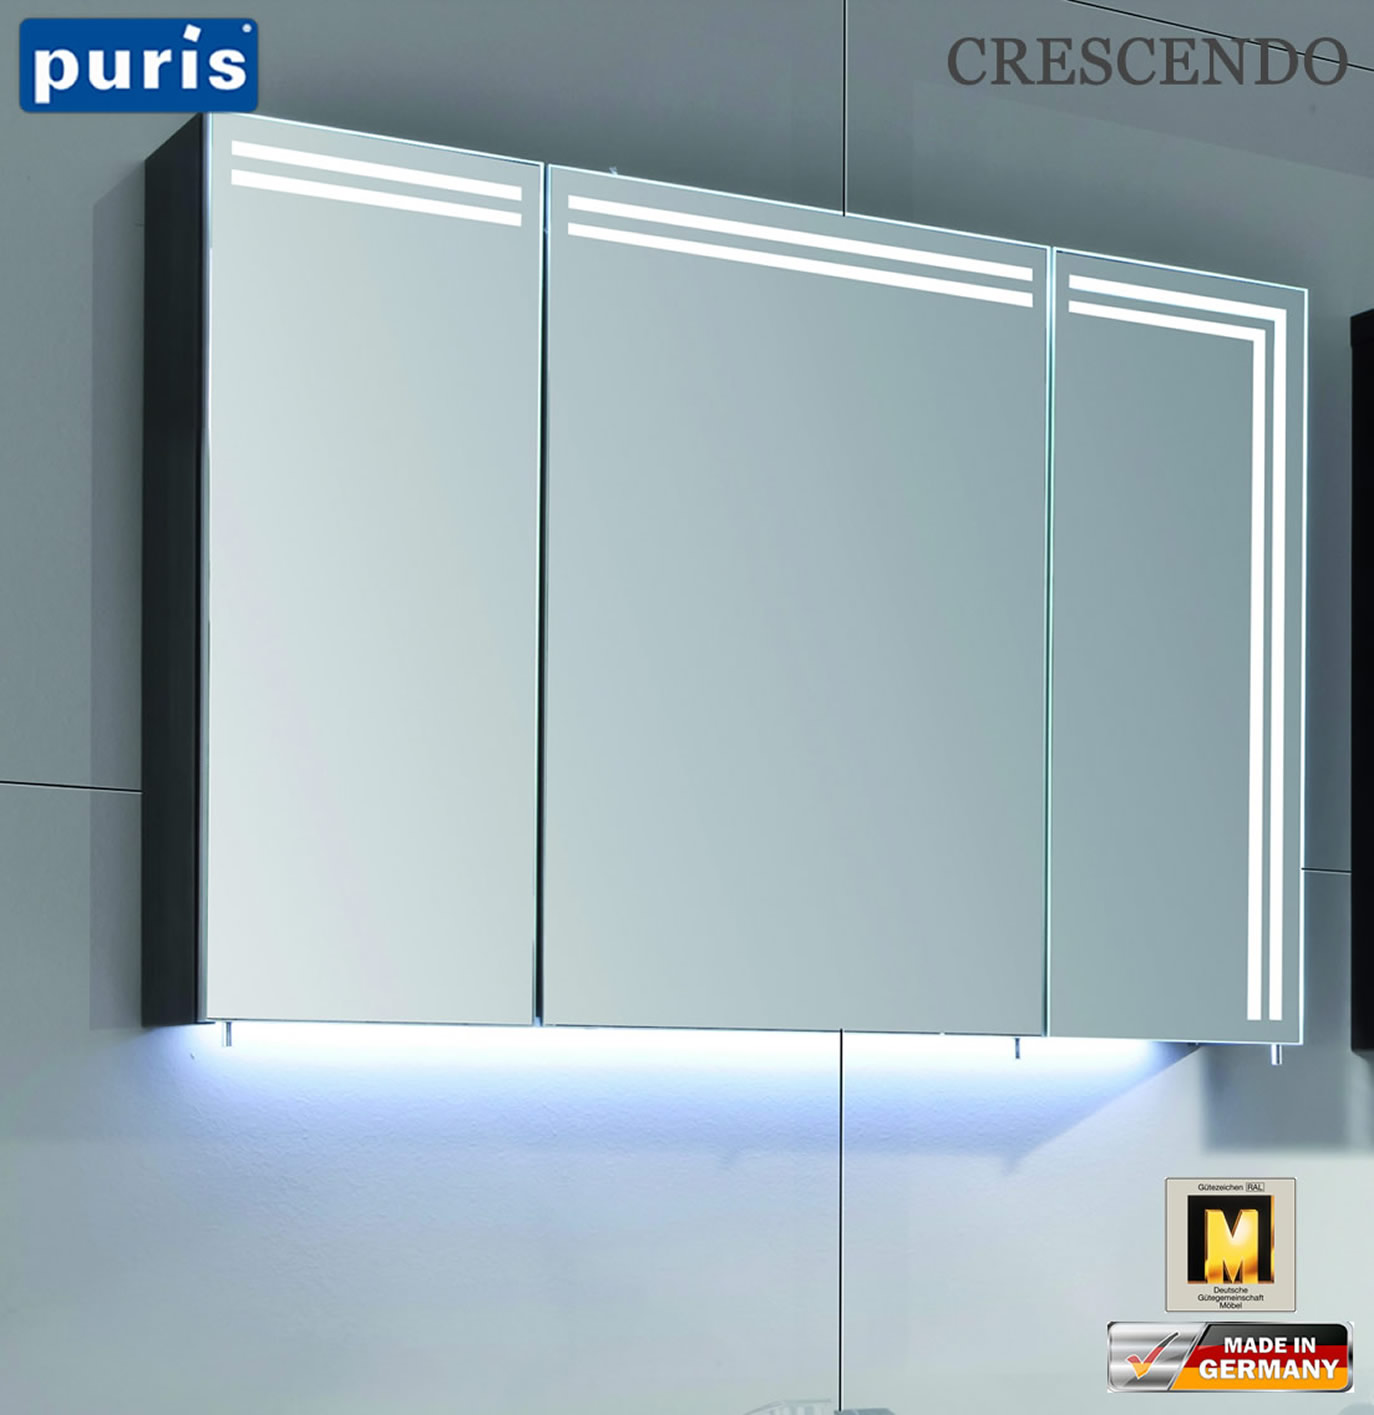 puris crescendo led spiegelschrank 90 cm s2a439l23. Black Bedroom Furniture Sets. Home Design Ideas